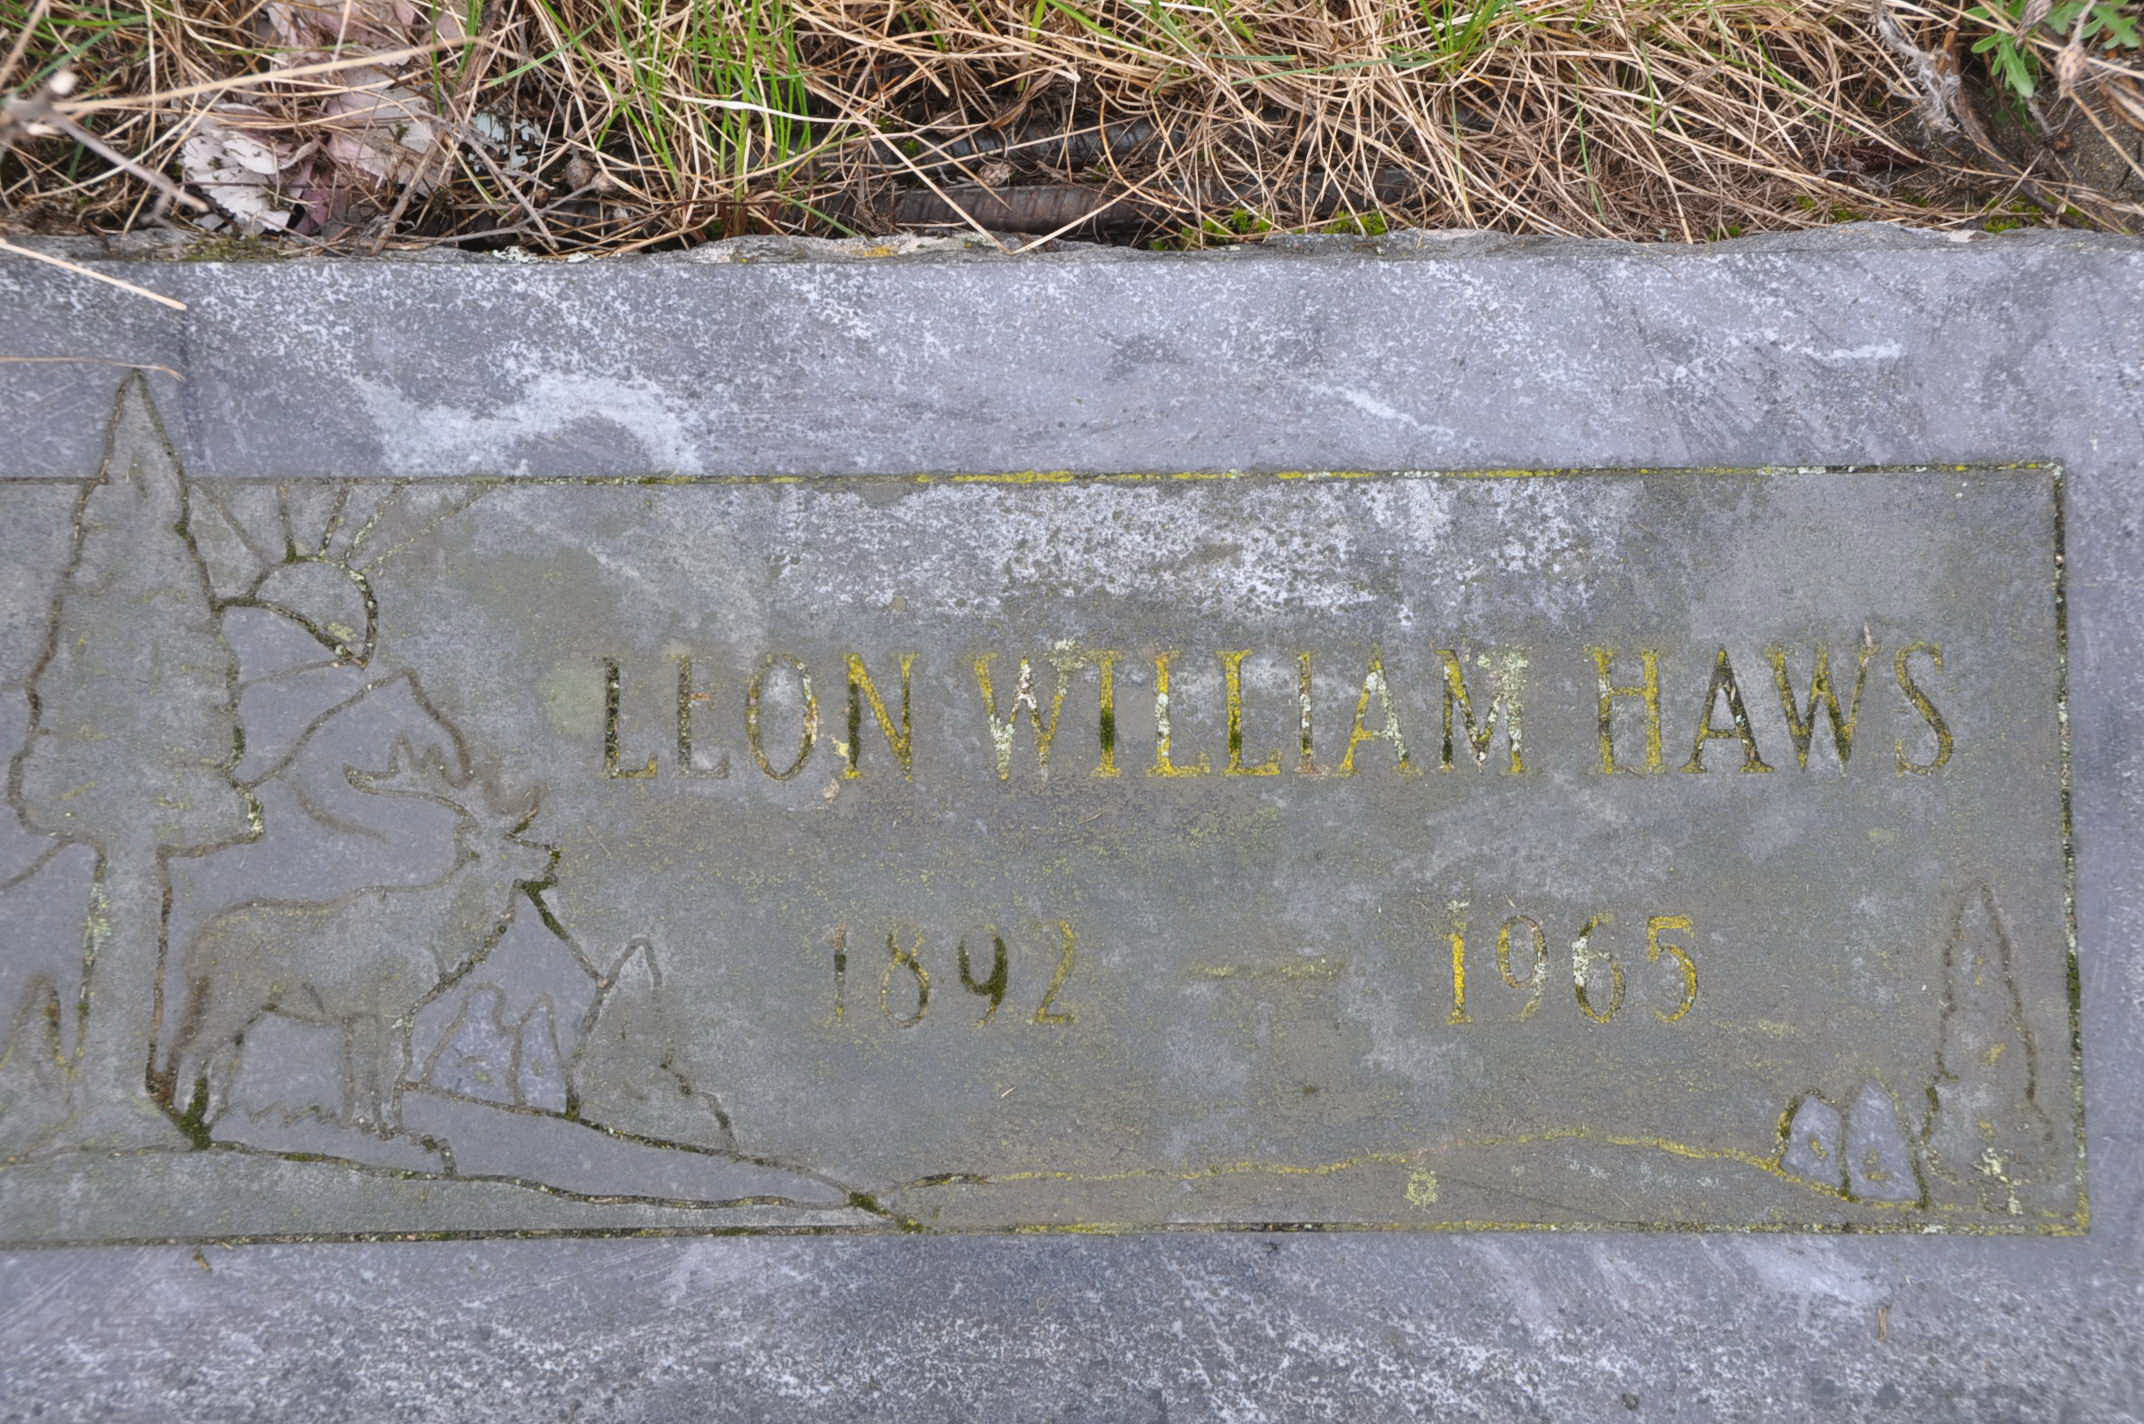 William Wesley Haws